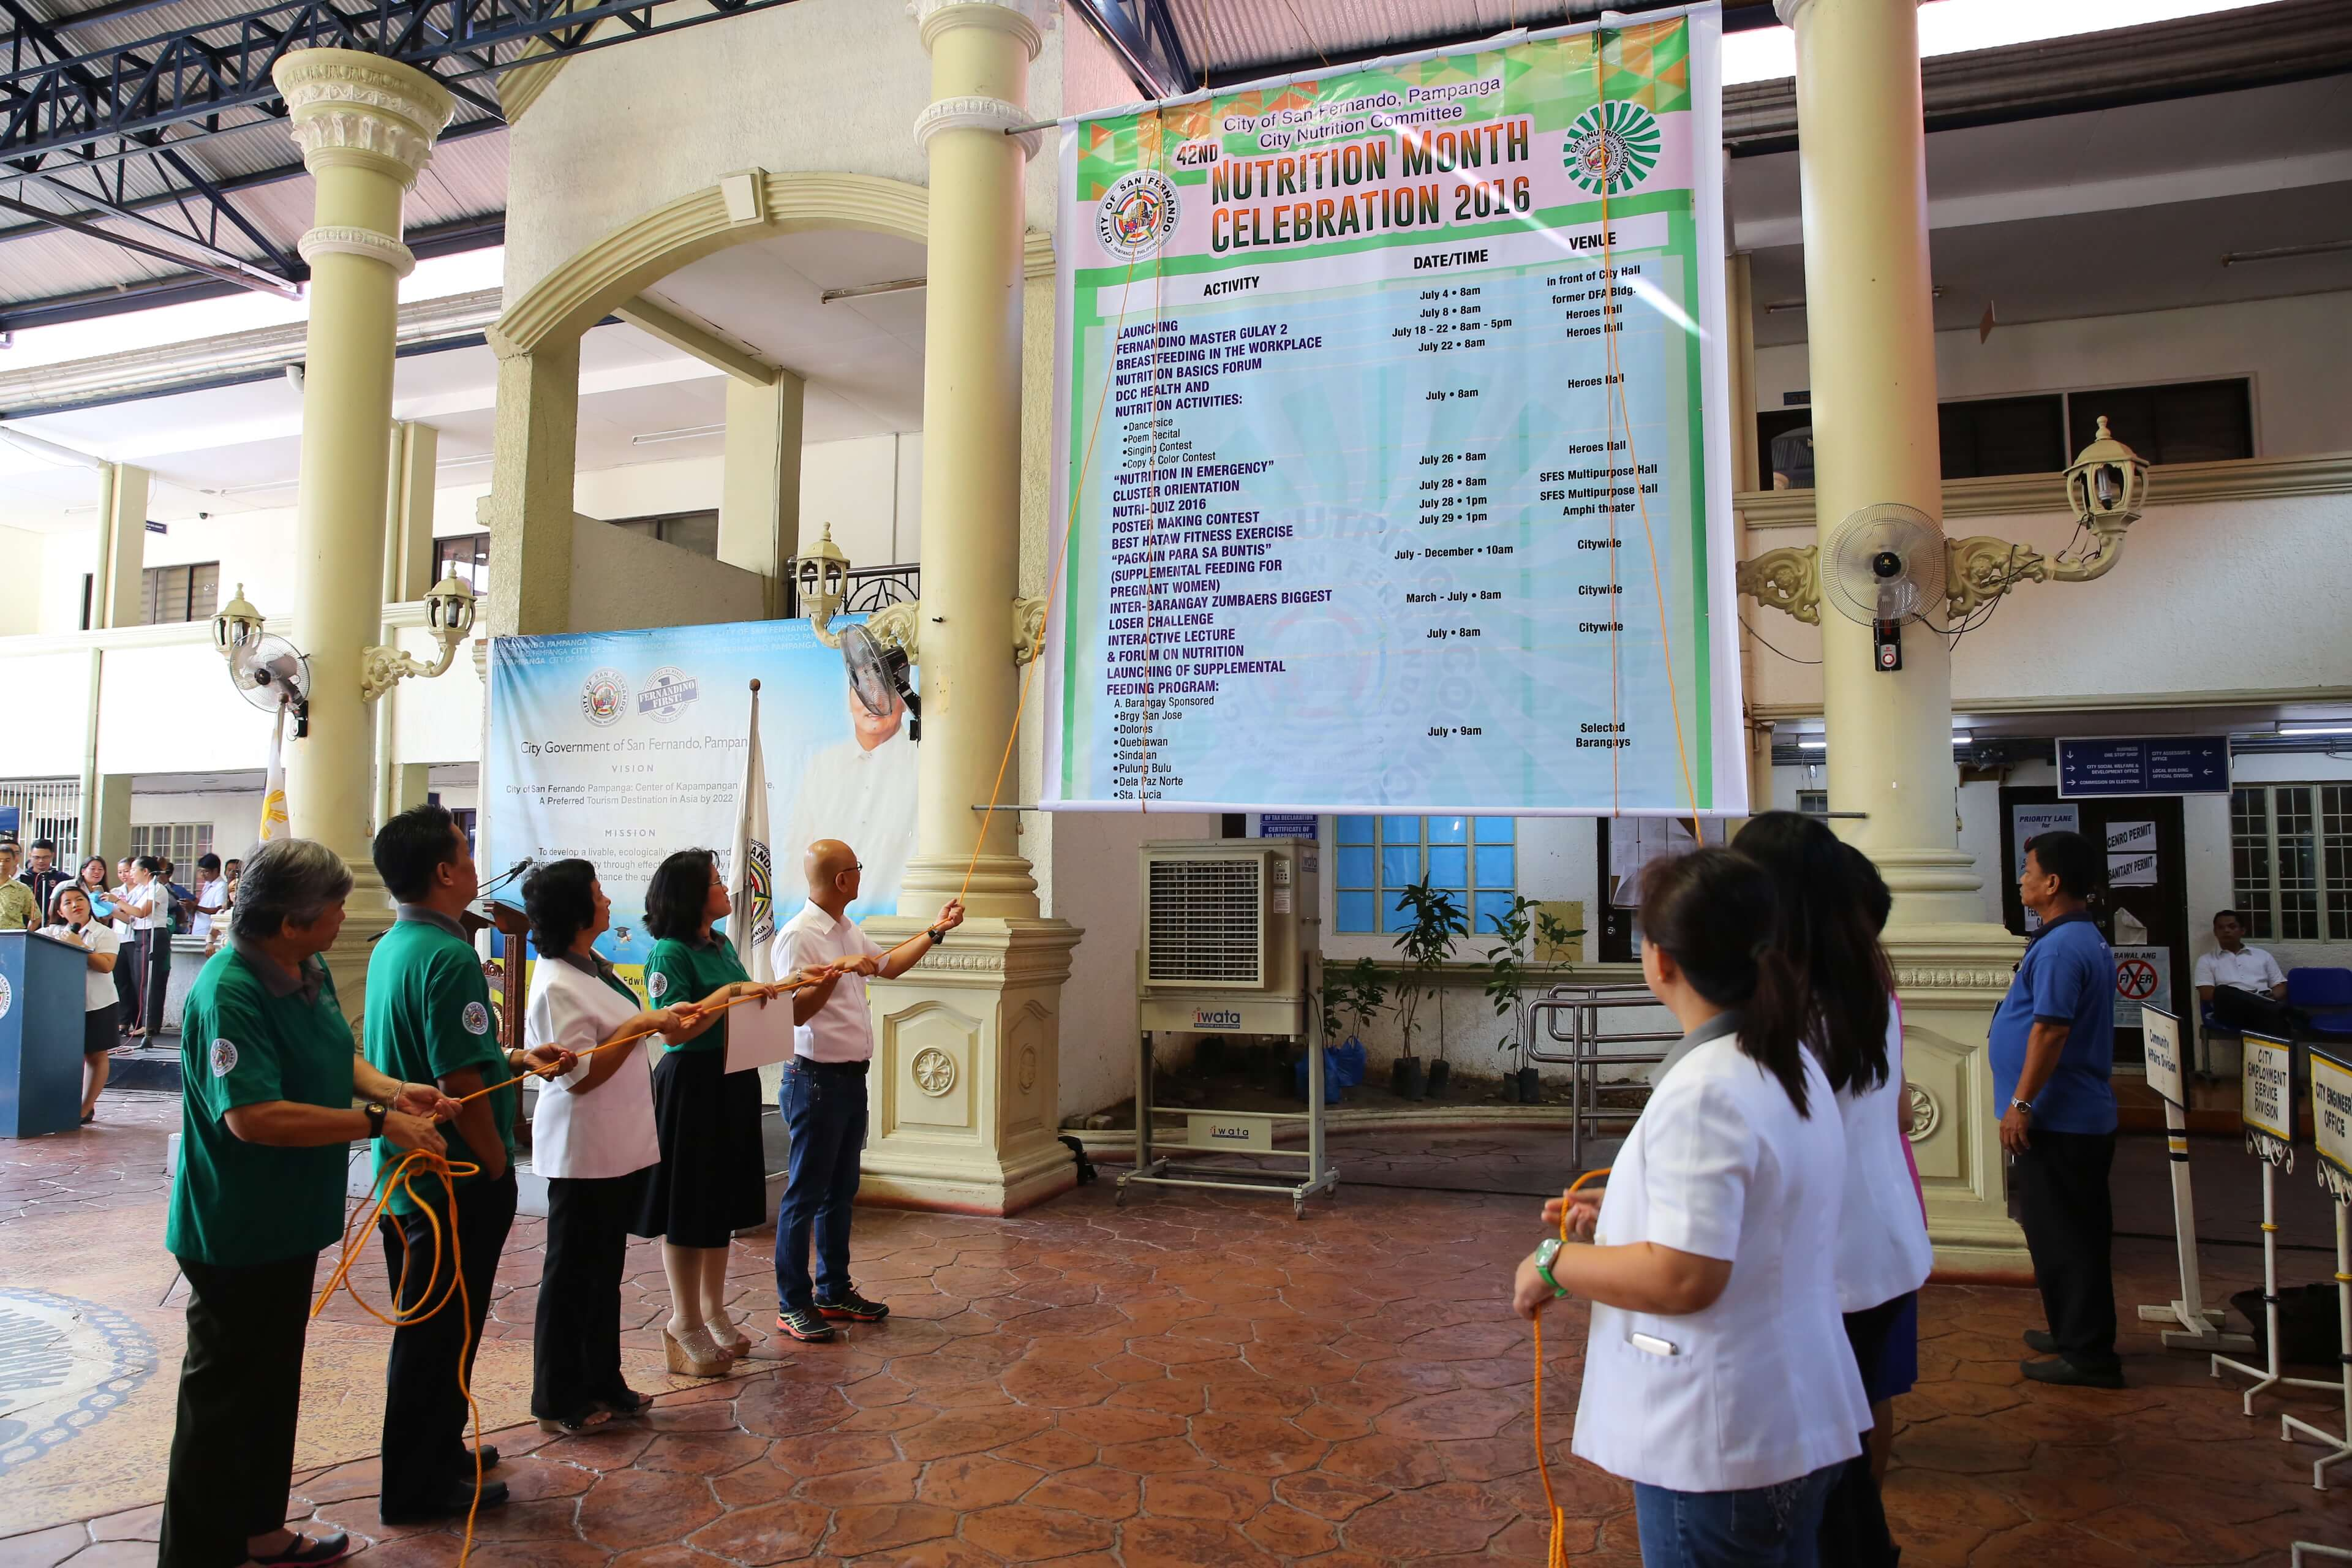 CSF Gears Up For Nutrition Month